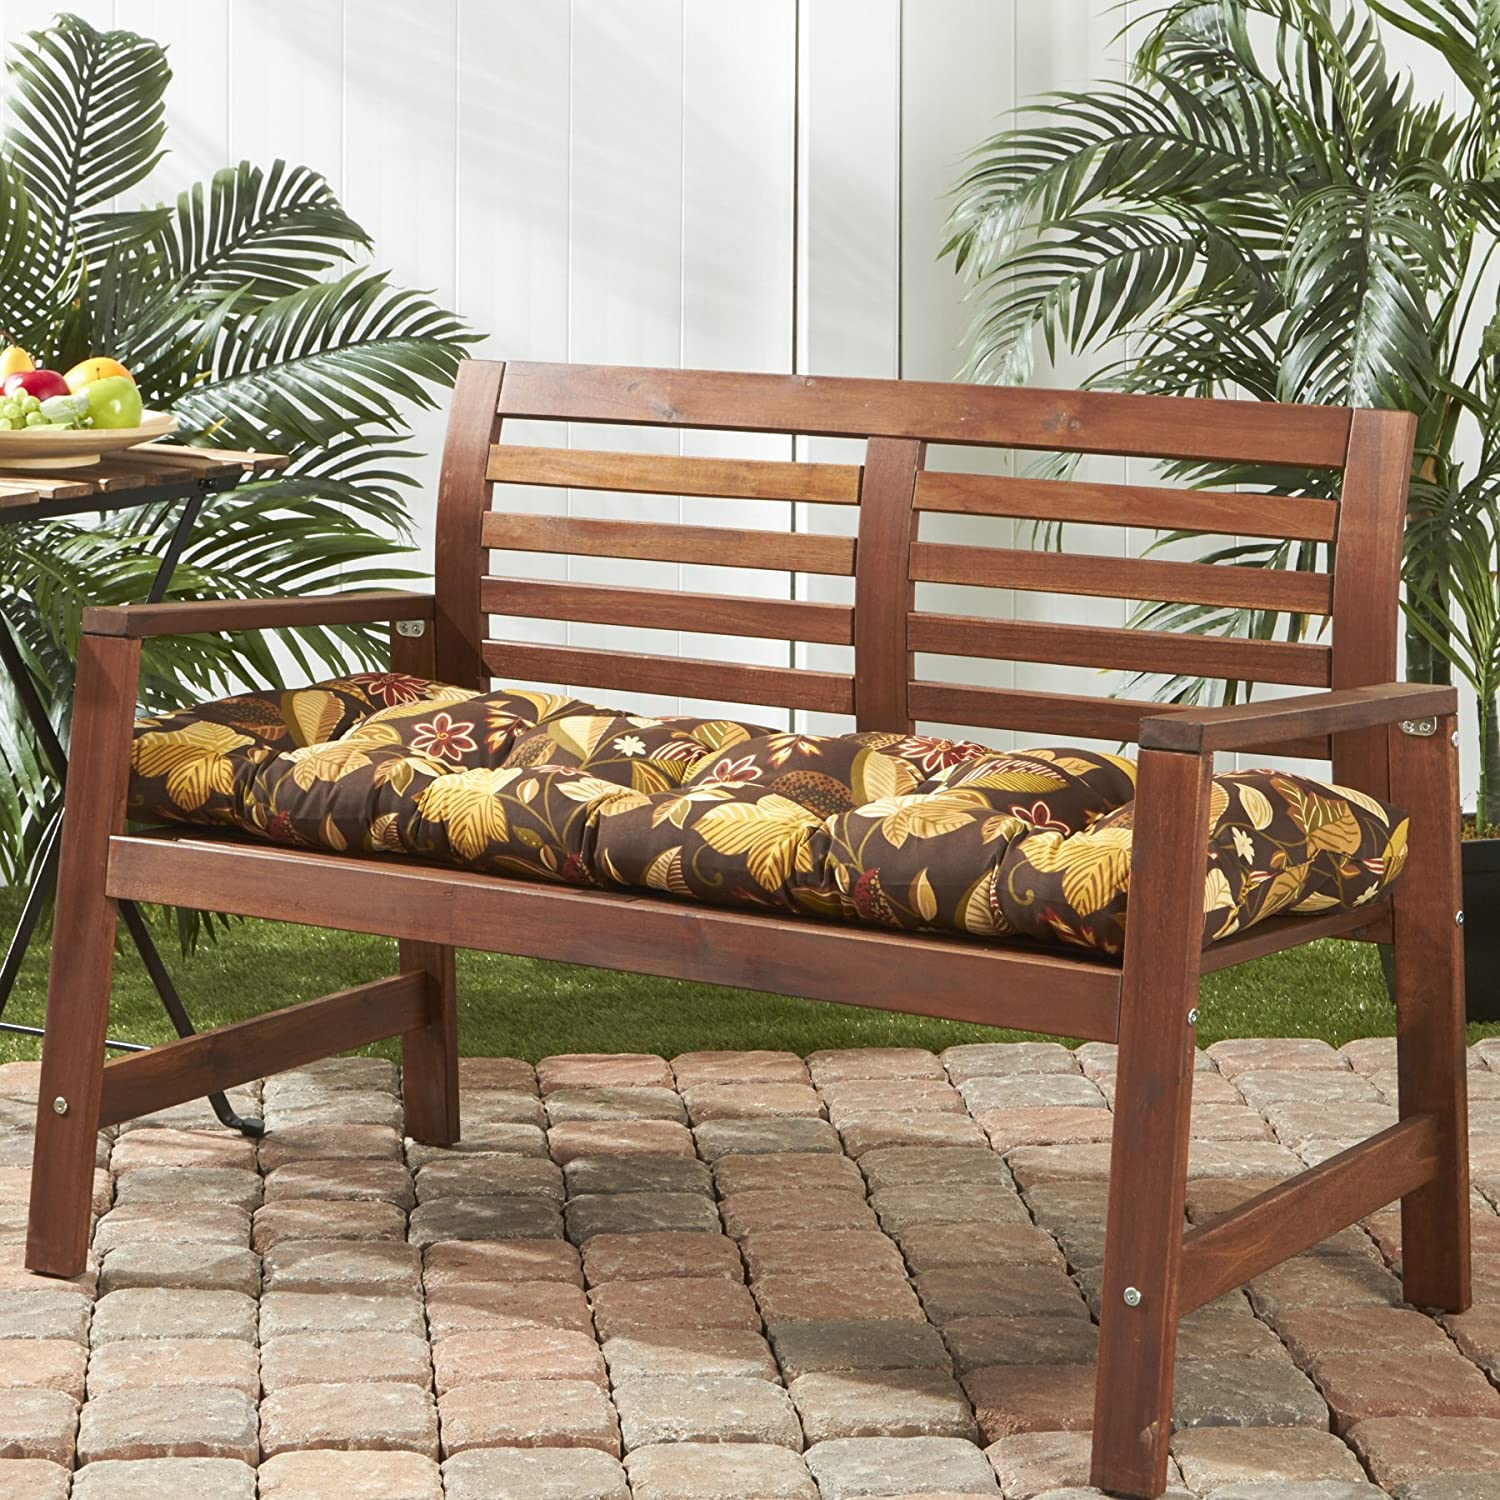 Greendale Home Fashions Indoor Outdoor Bench Cushion, Timberland Floral, 51-Inch